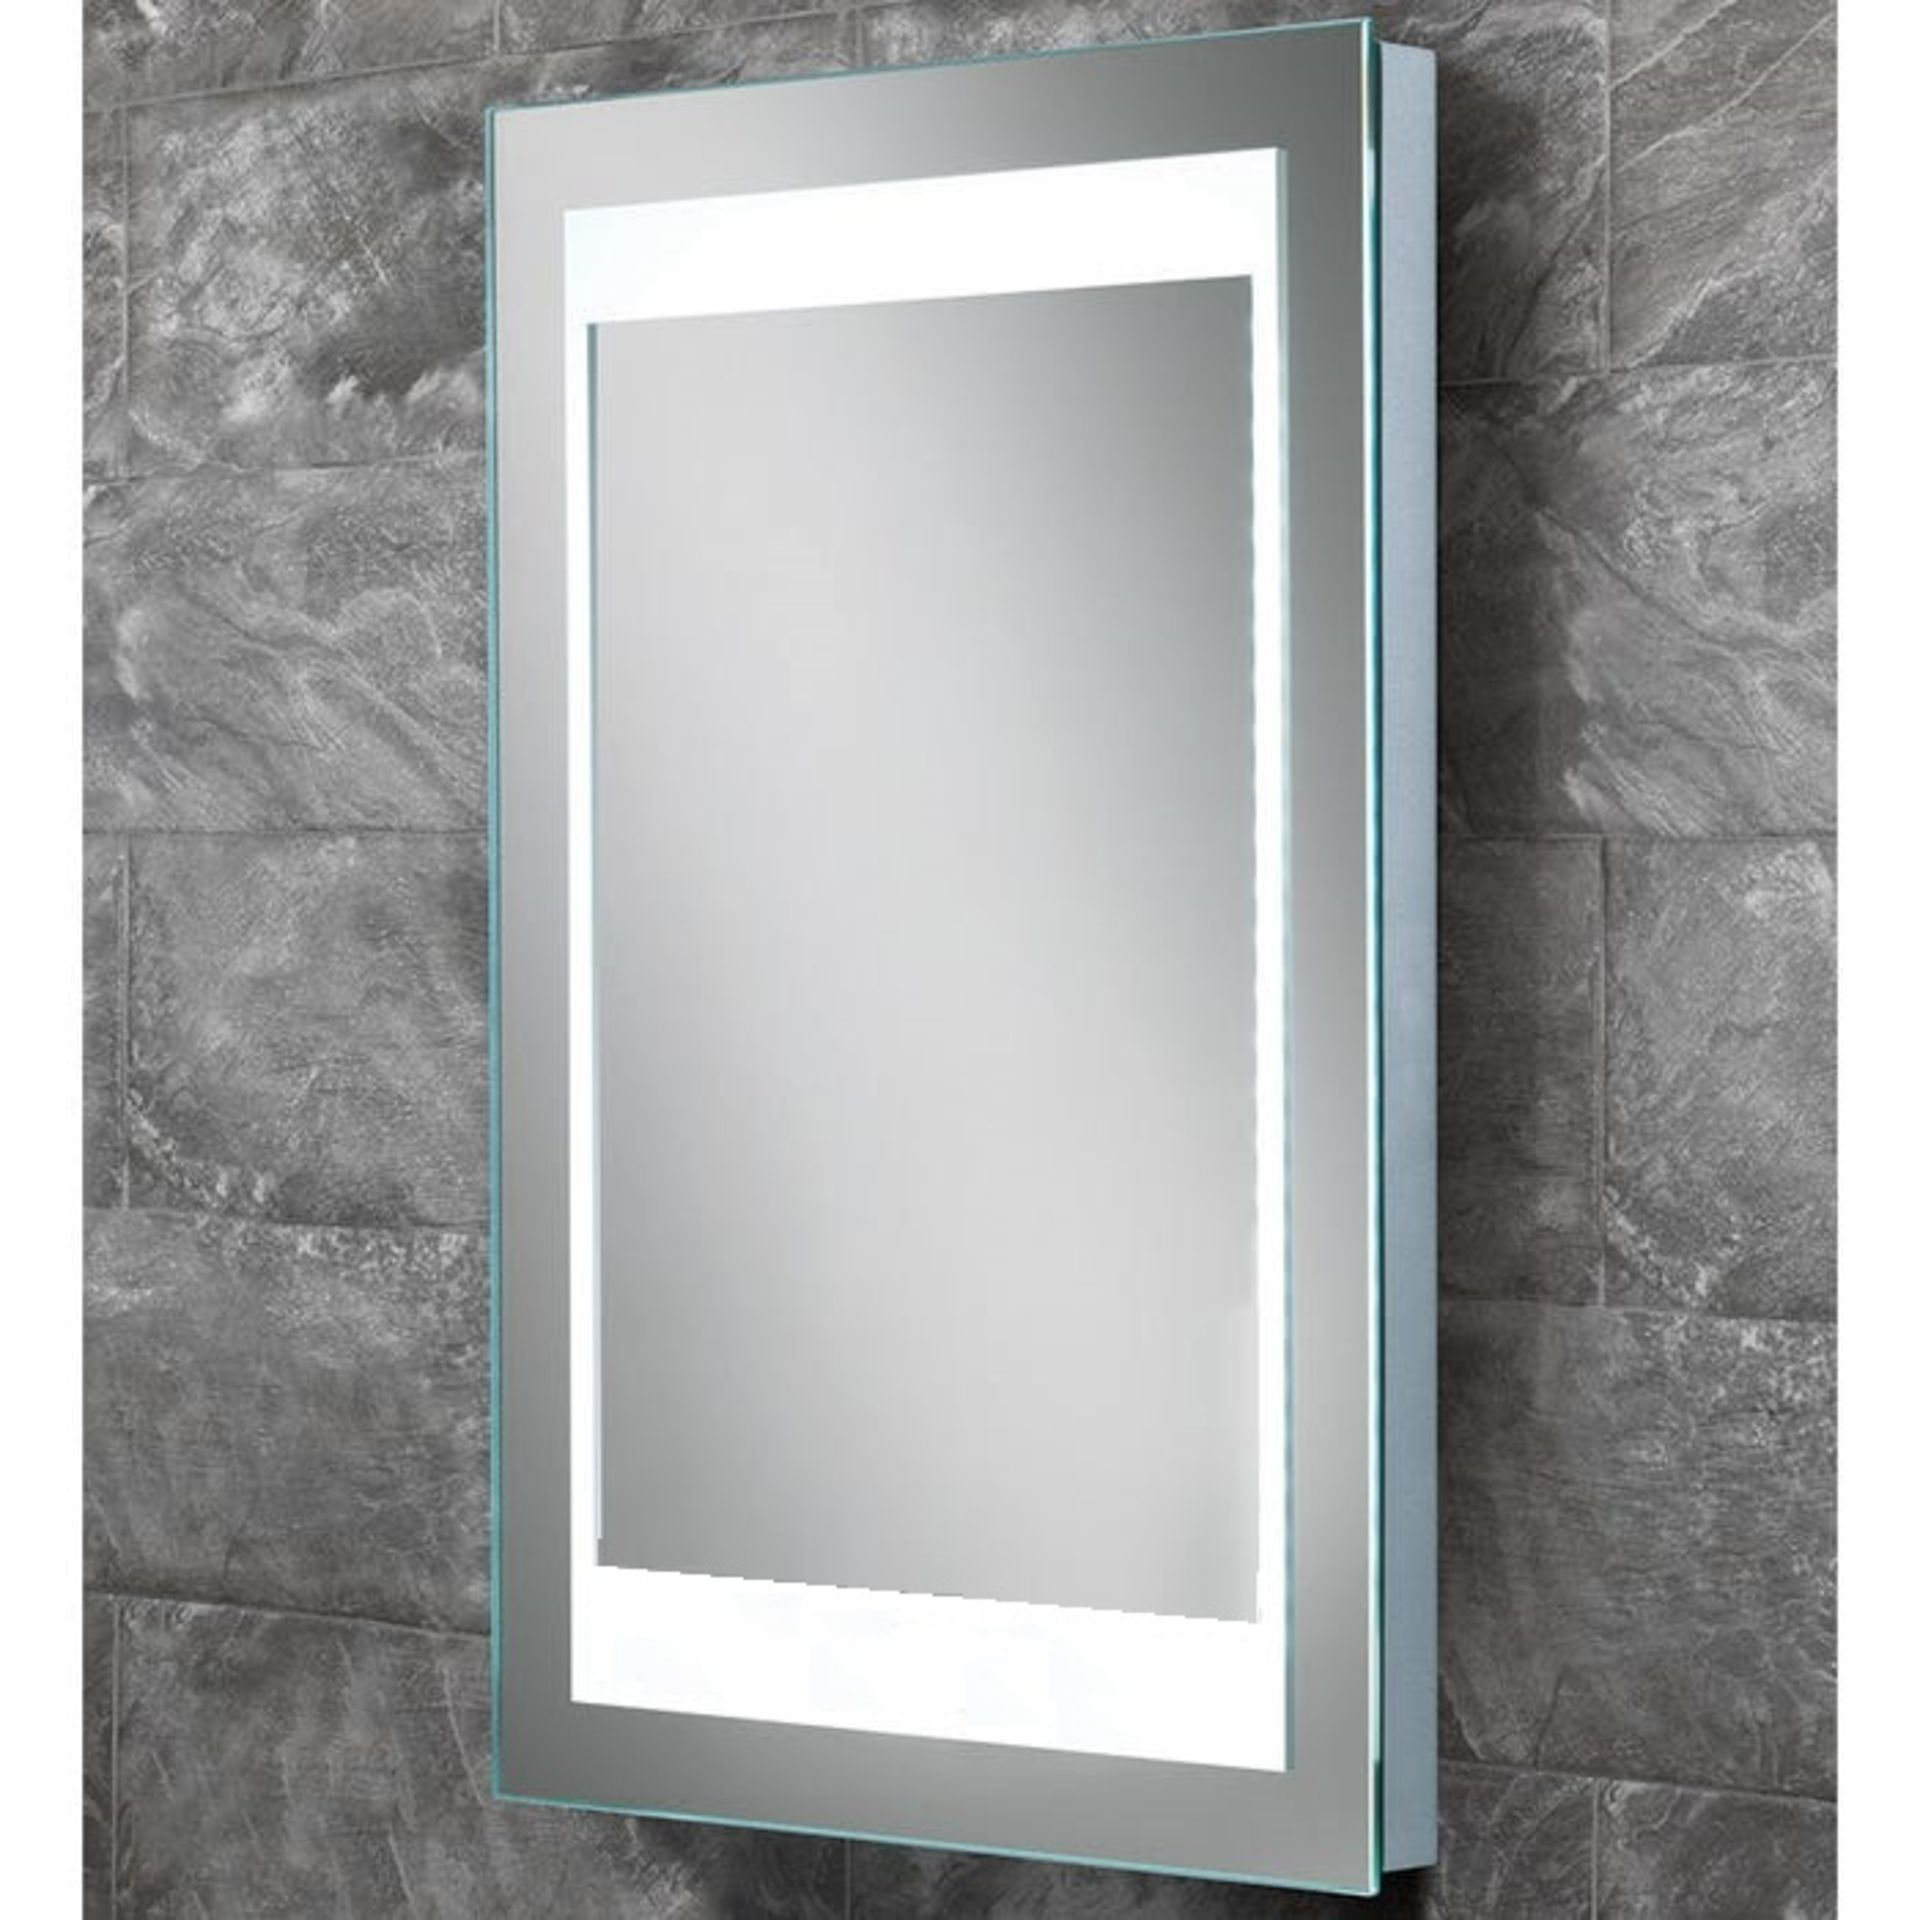 Lot 21 - Bathstore 'Atmos' designer back lit LED illuminated mirror with de-mister and no-touch sensor